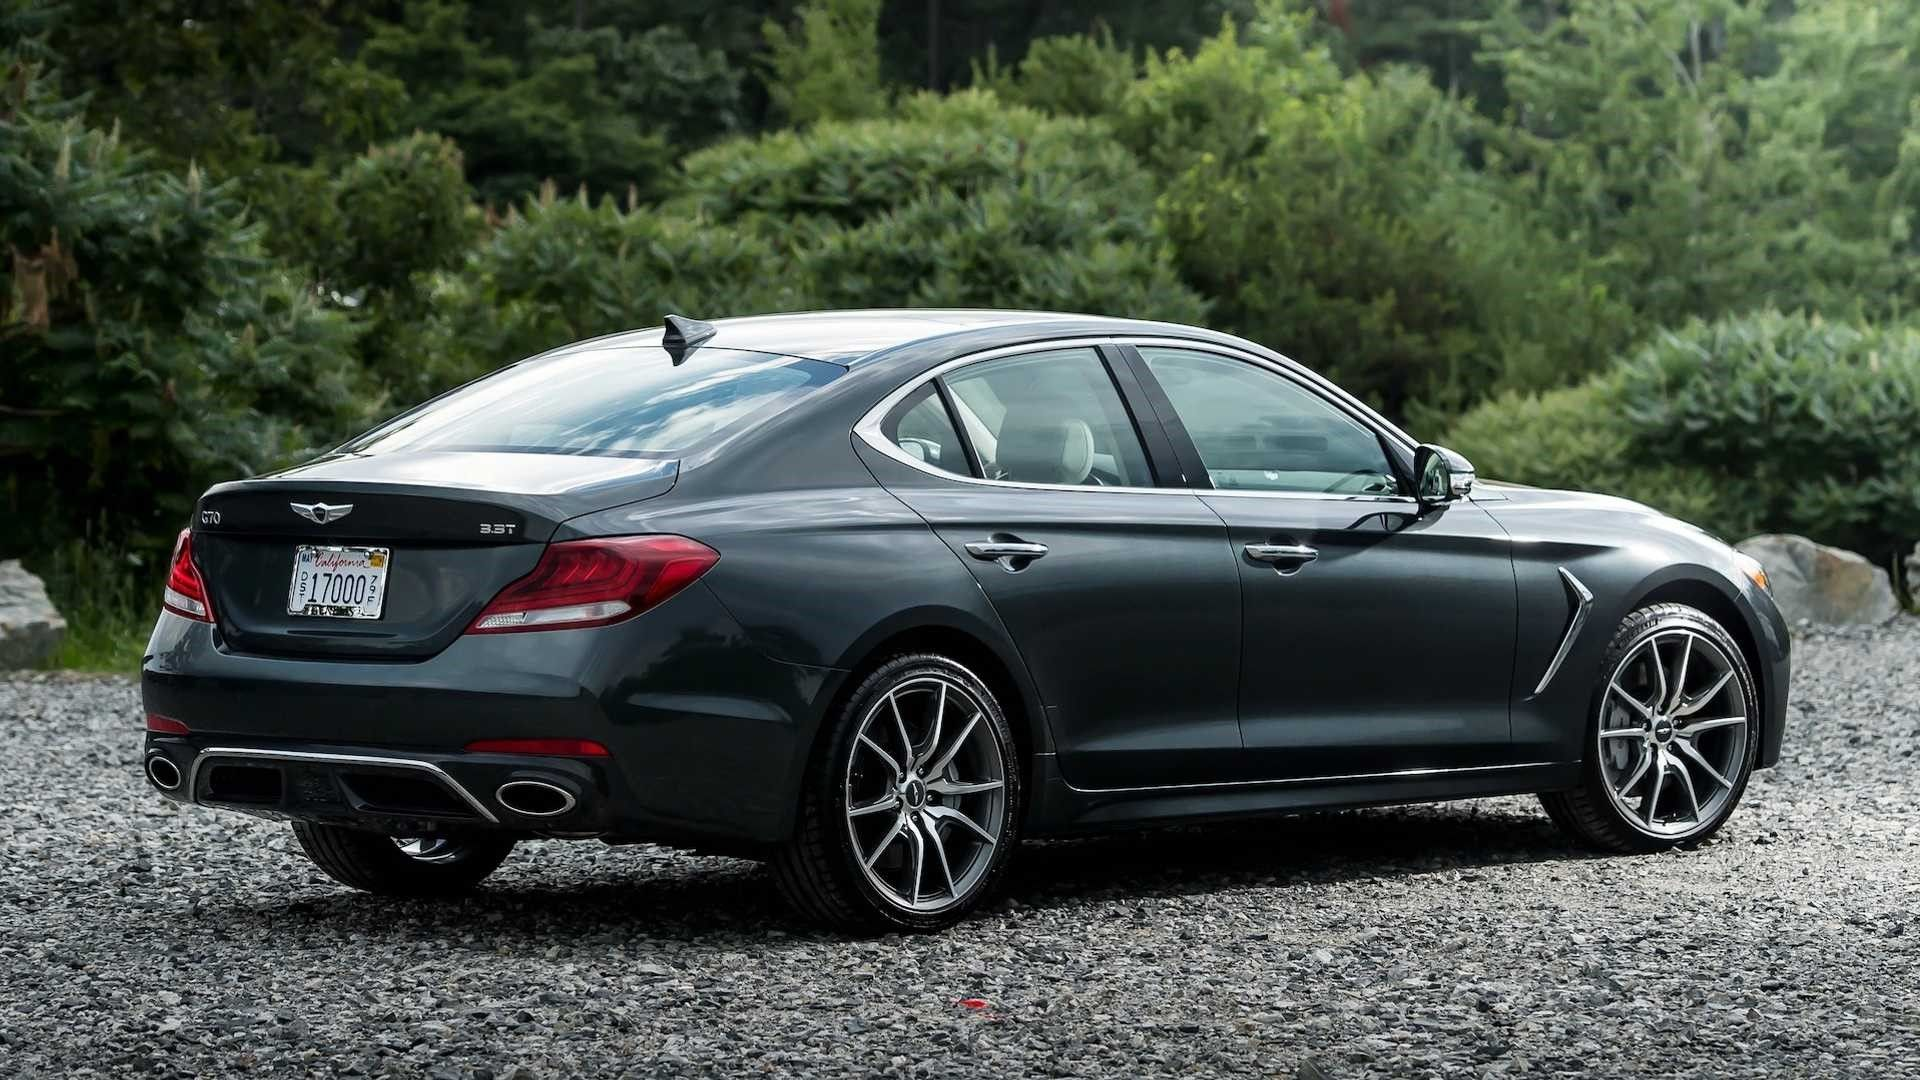 2021 Genesis G70 Review: Price, Engine, Features, MPG and ...